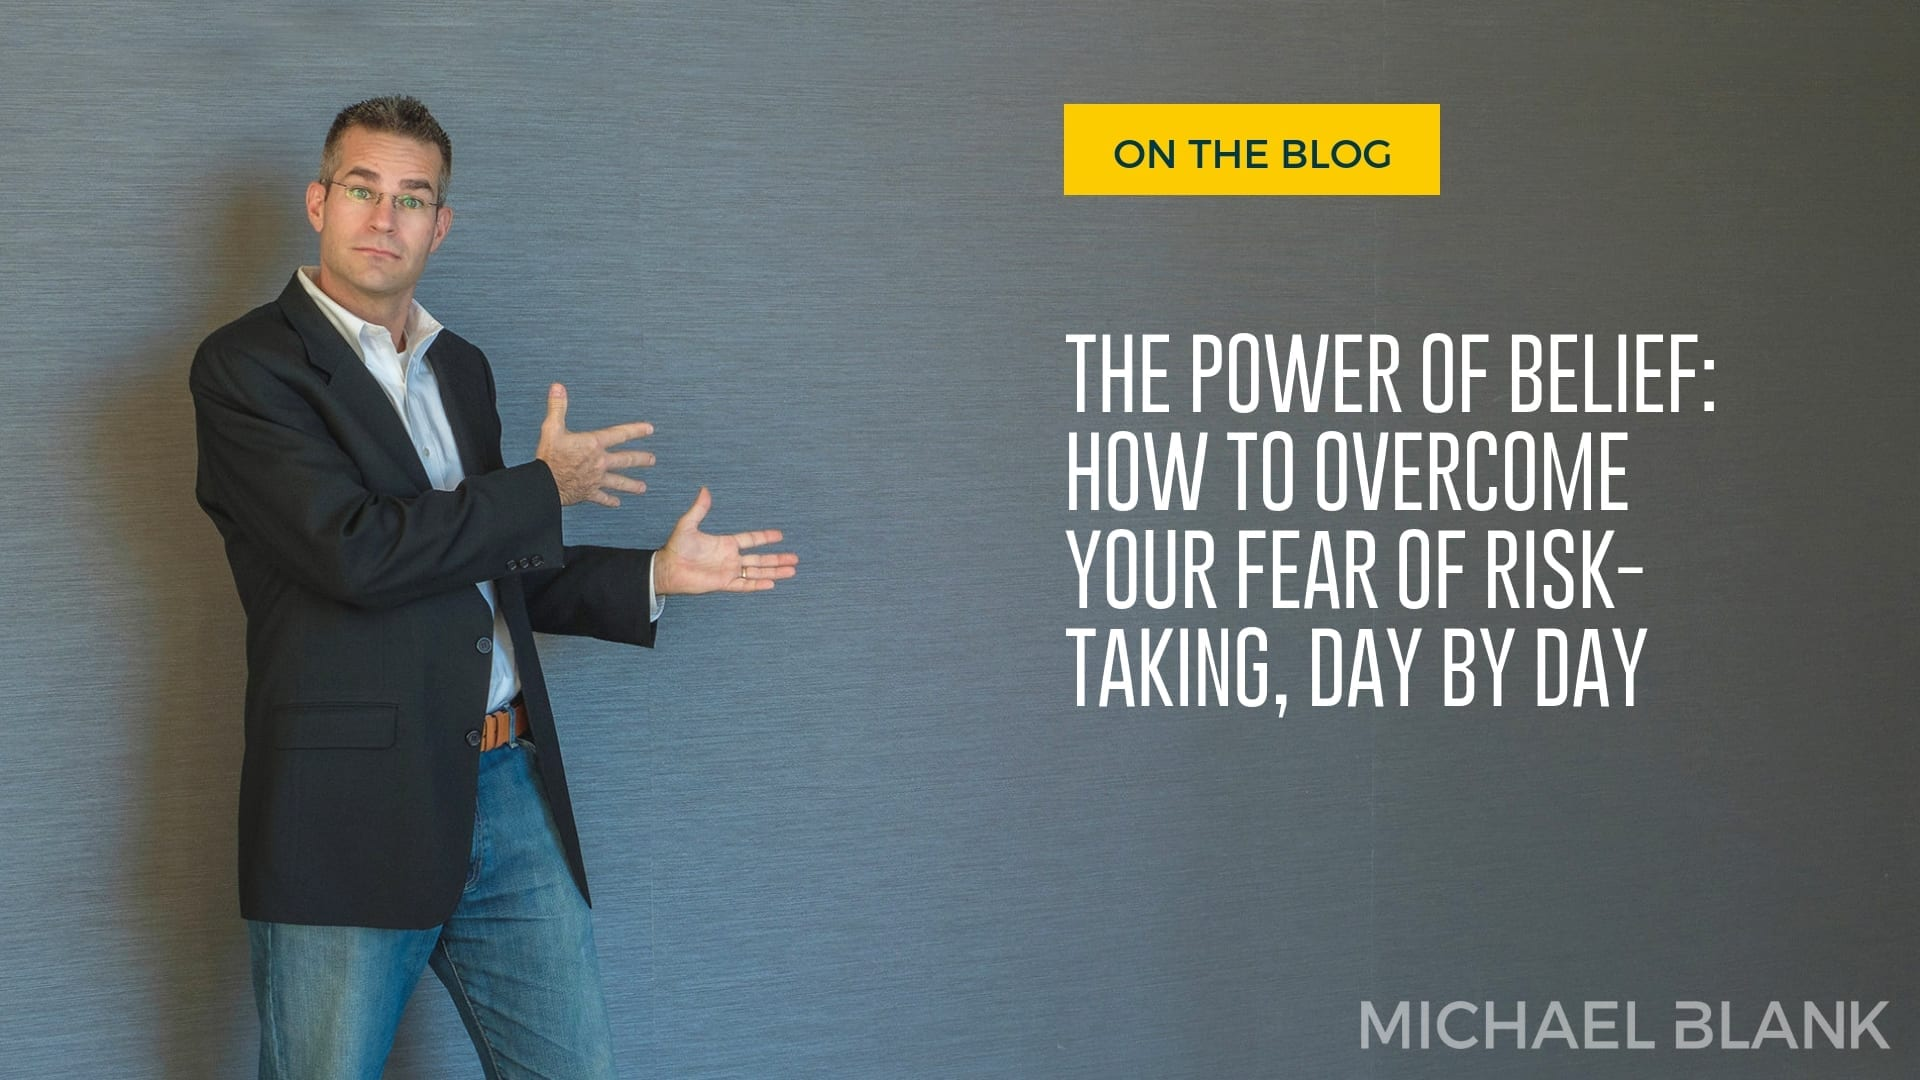 The Power of Belief: How to Overcome Your Fear of Risk-Taking, Day by Day